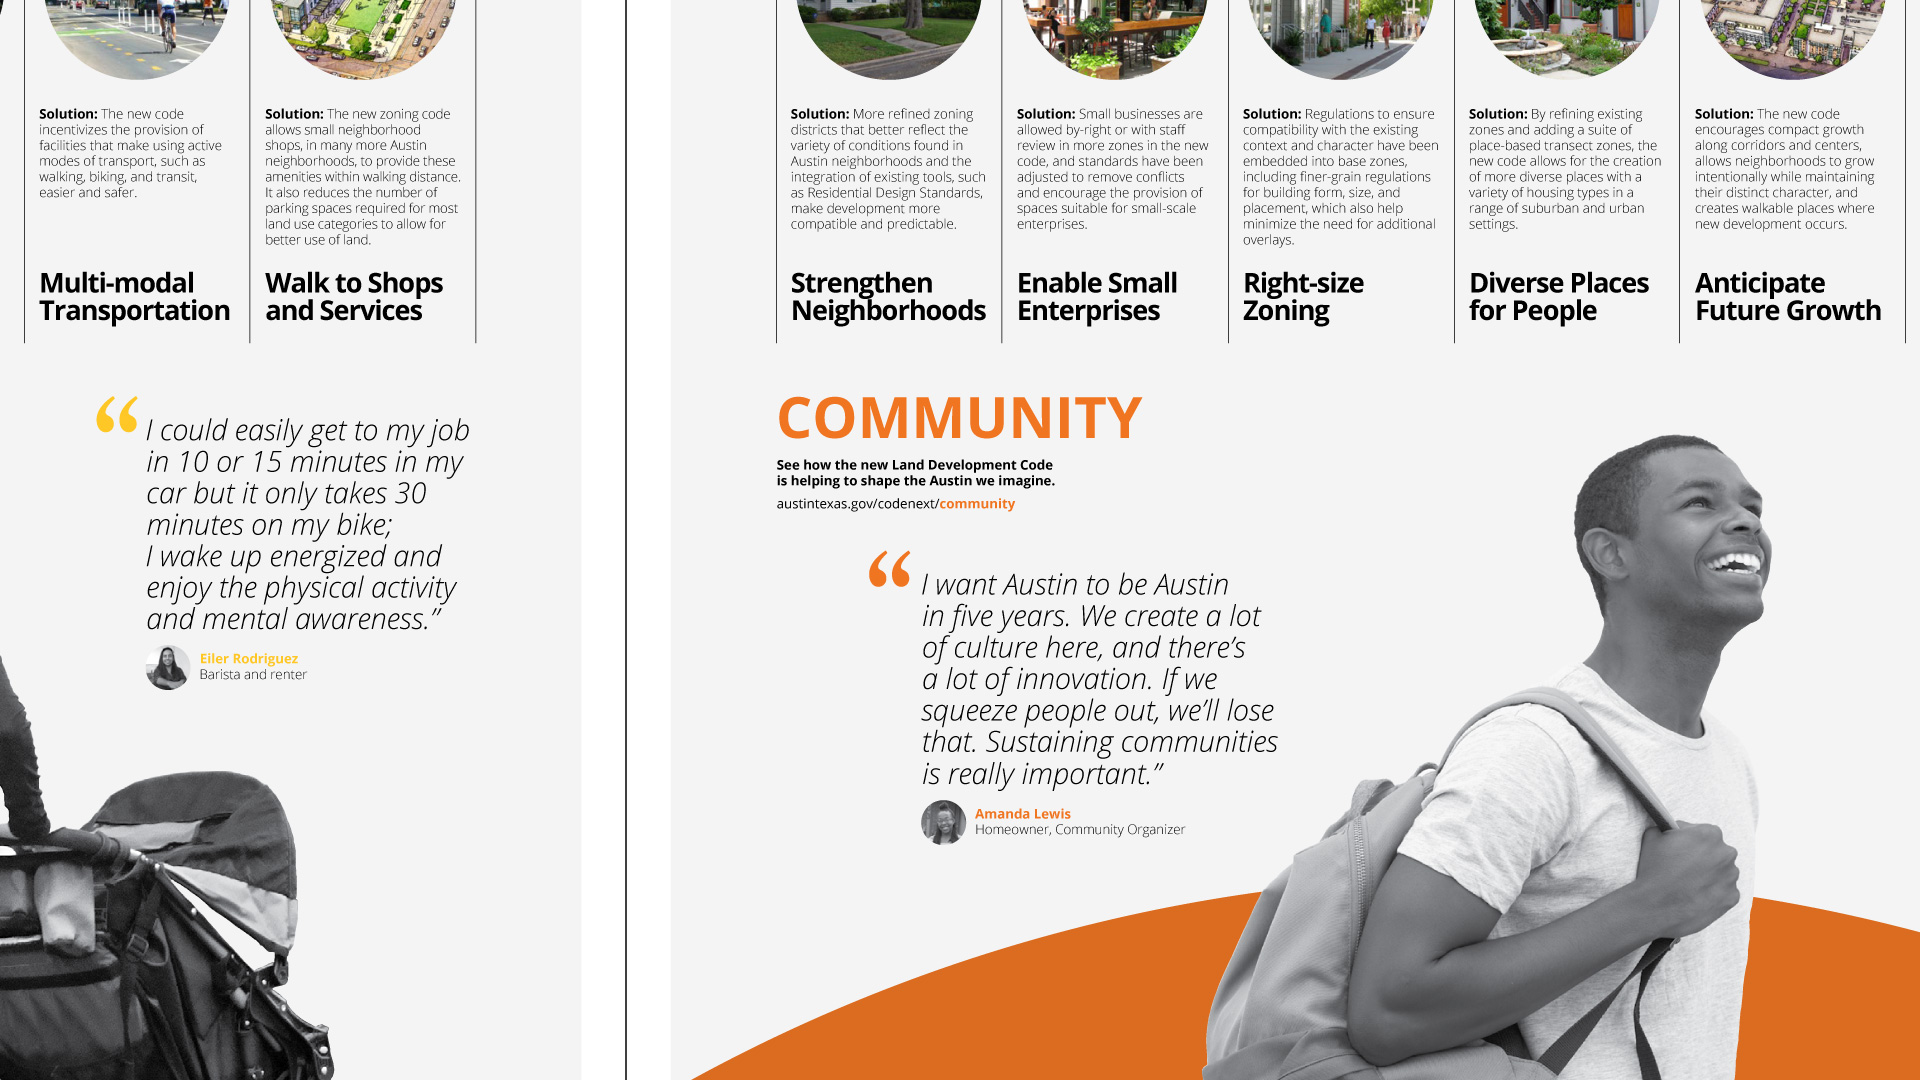 Cropped view of a series of posters presenting the community benefits of the new land development code